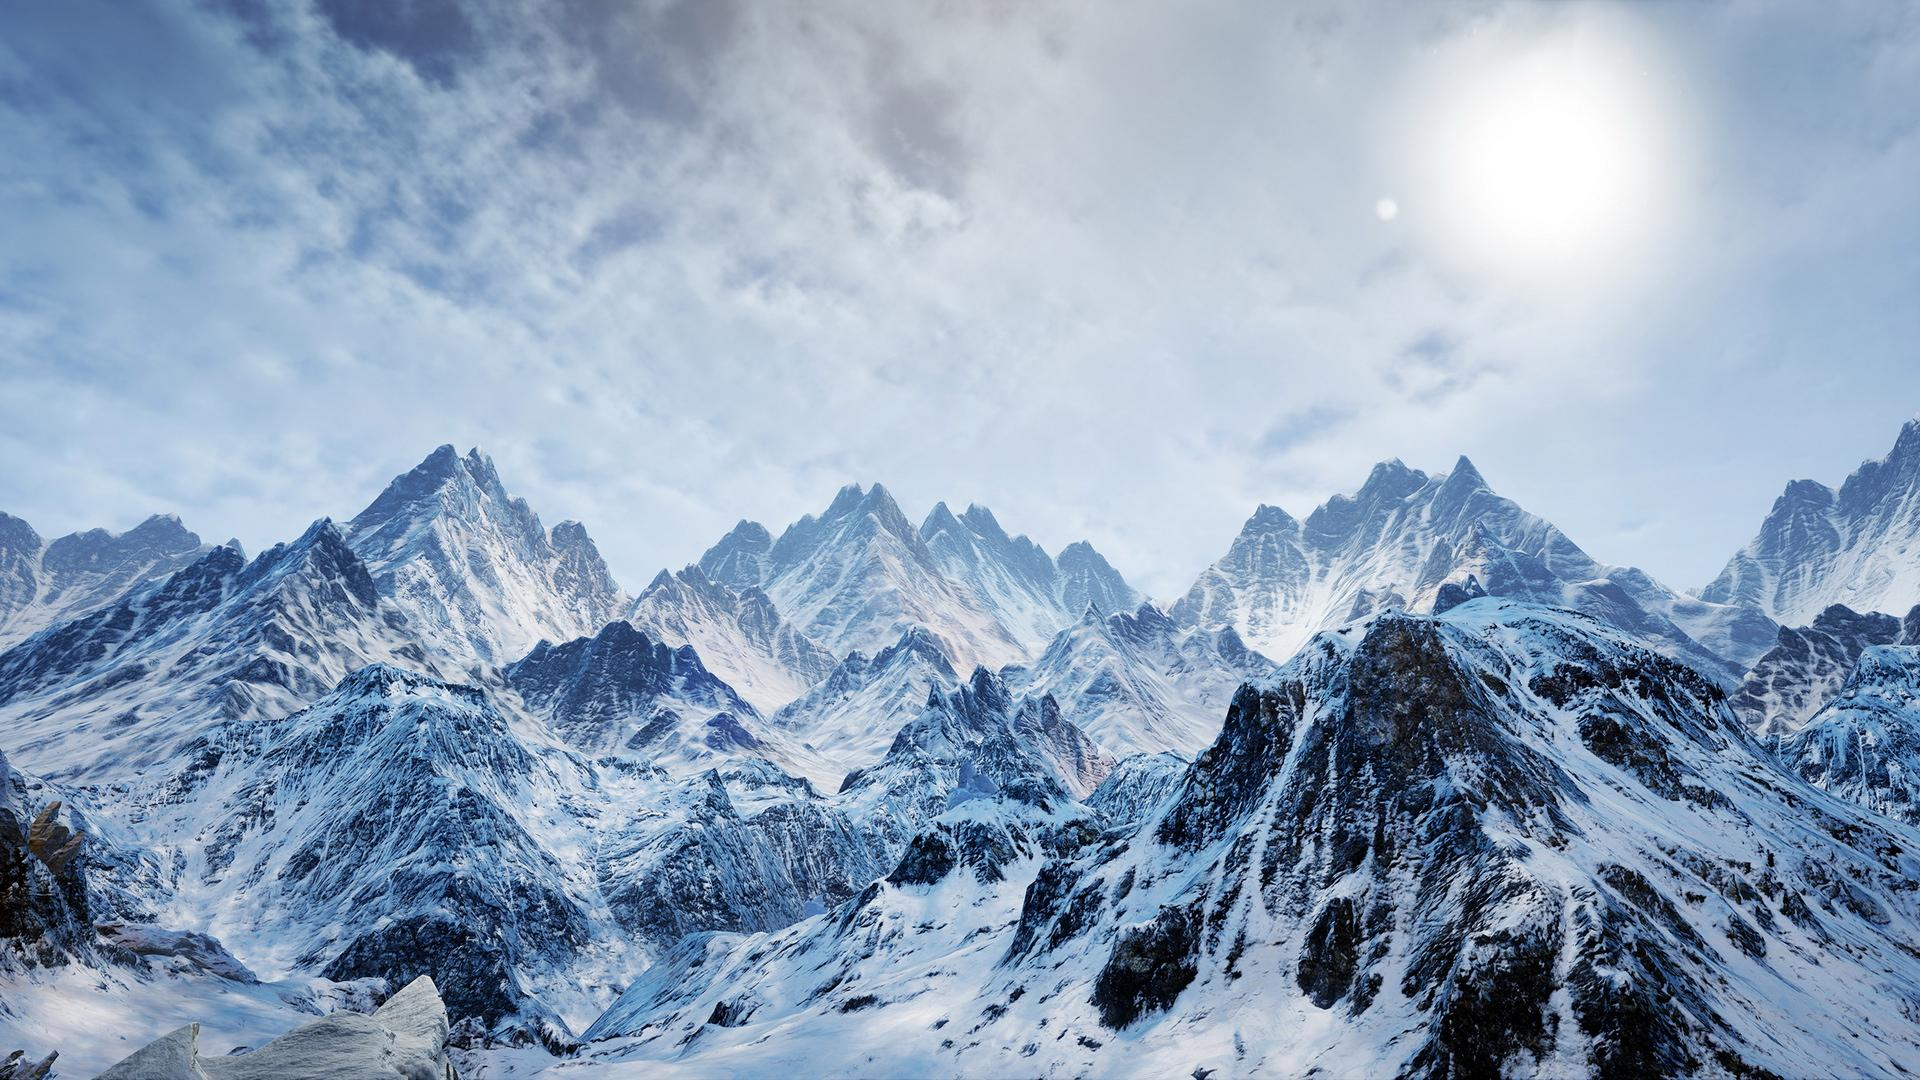 Ice and Snow Mountains Background